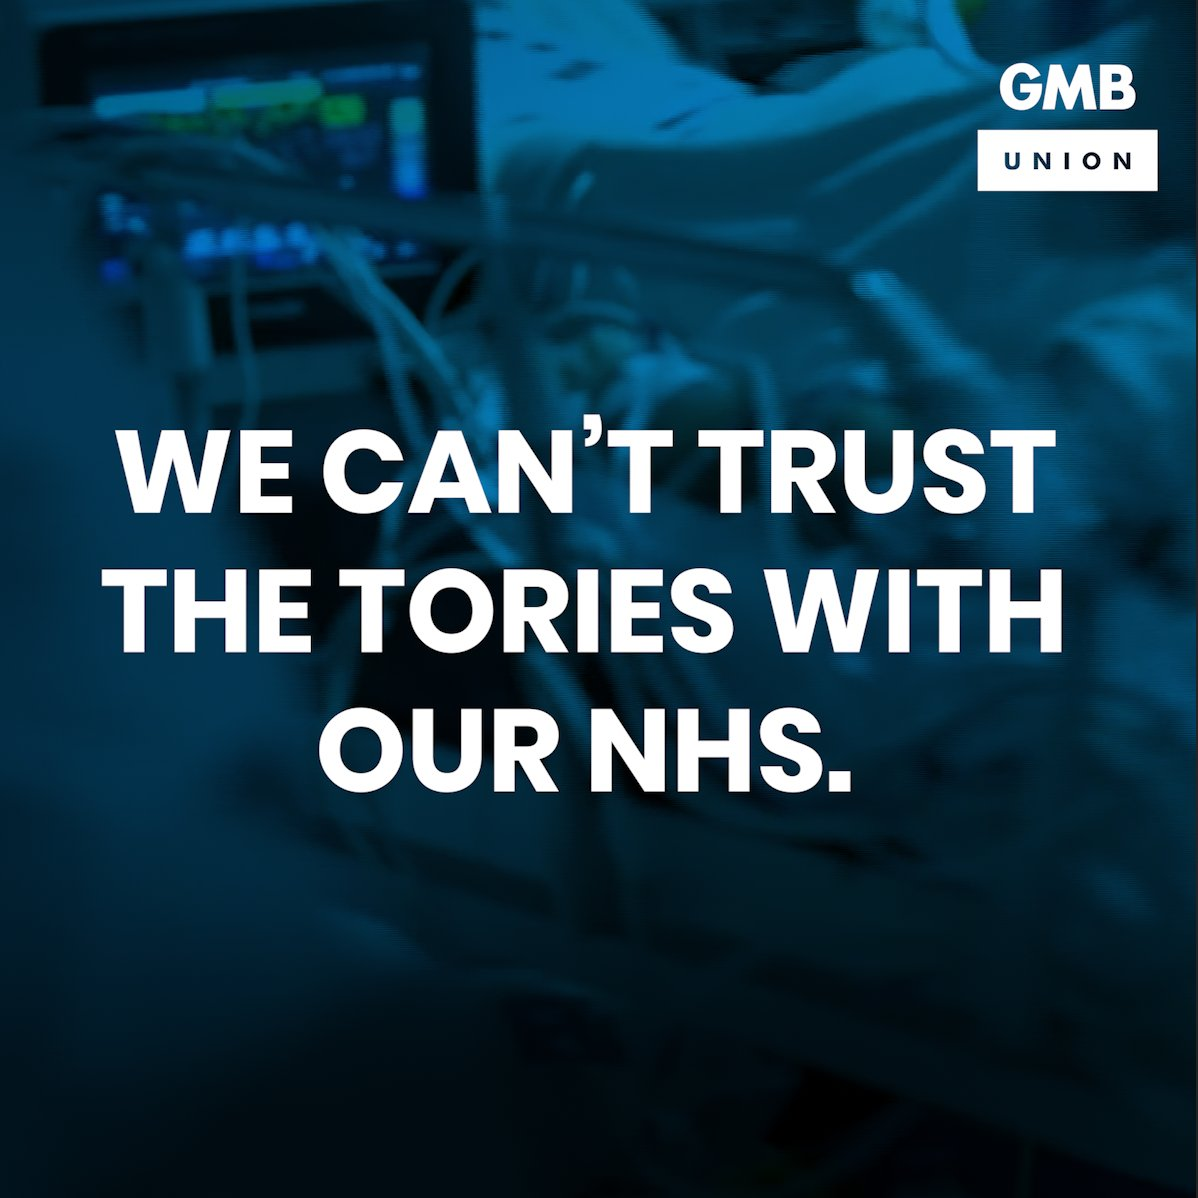 We can't trust Boris Johnson with our NHS.  #BBCQT #Questiontime